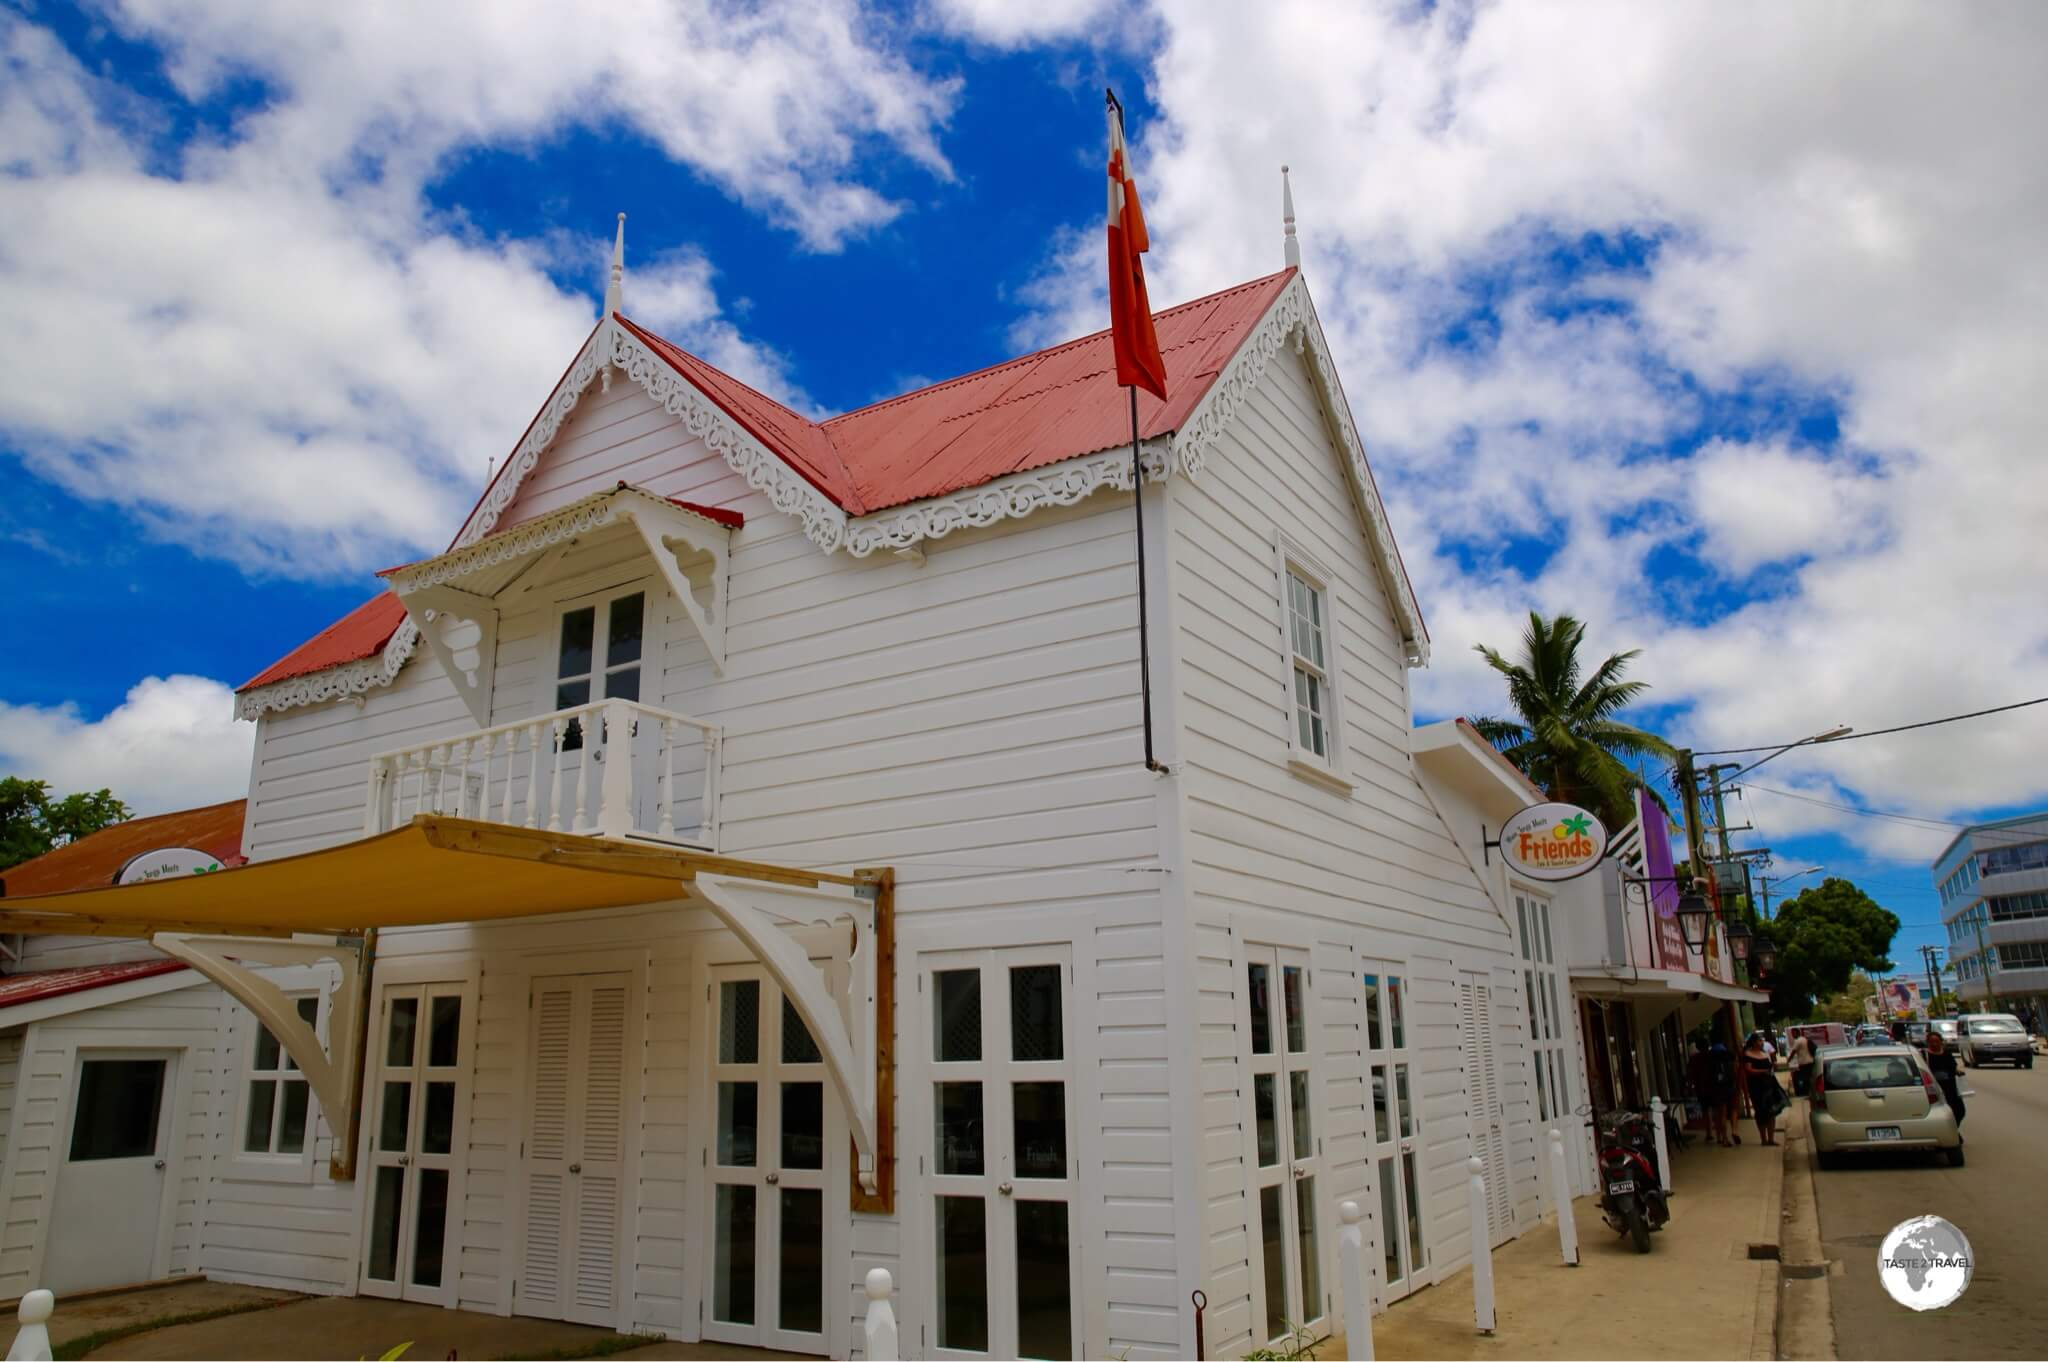 The ever-popular Friend's cafe in downtown Nuku'alofa.